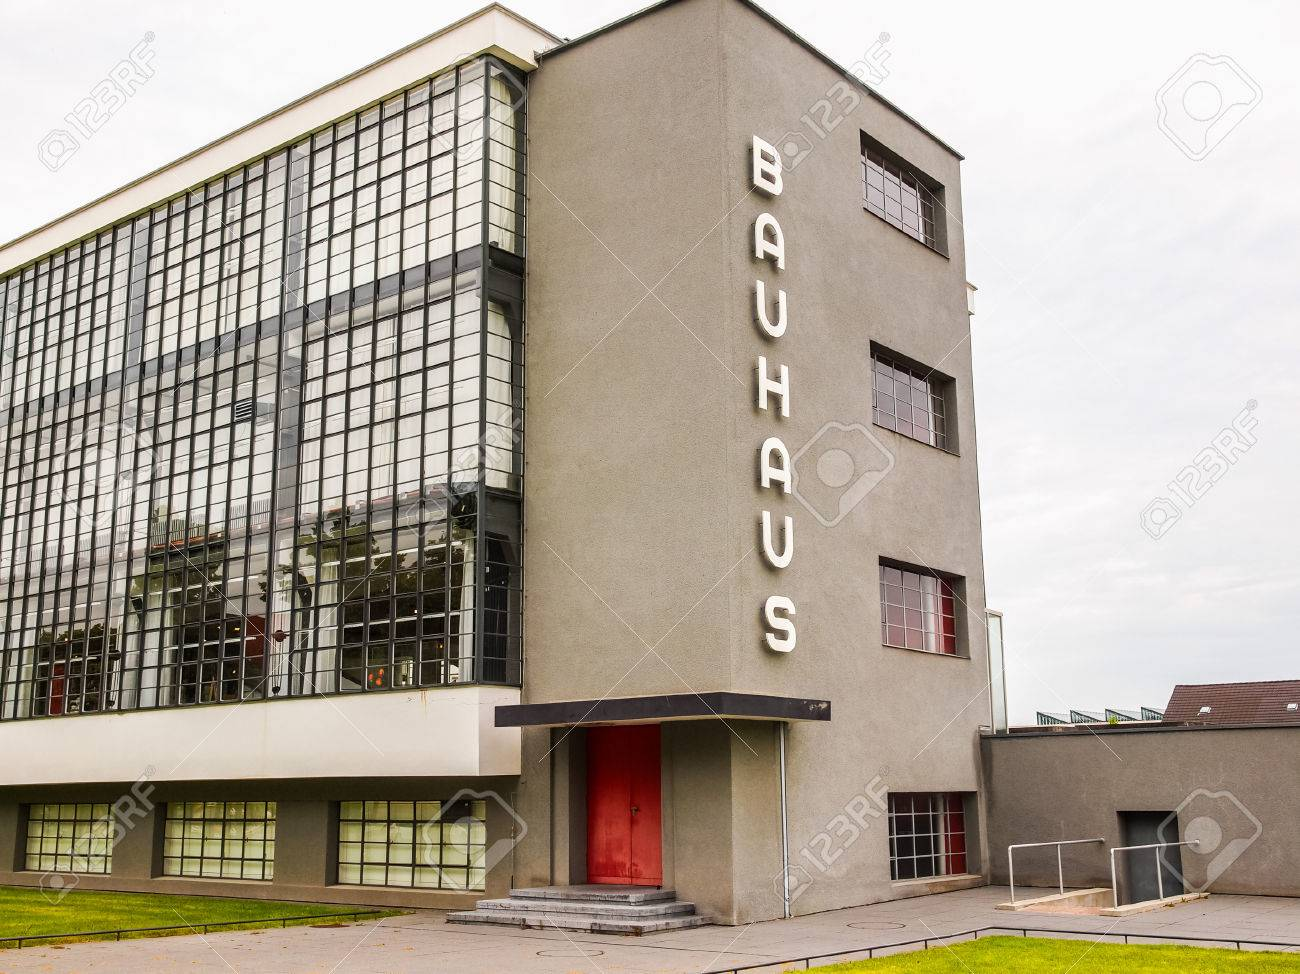 dessau germany june 13 2014 the bauhaus art school iconic